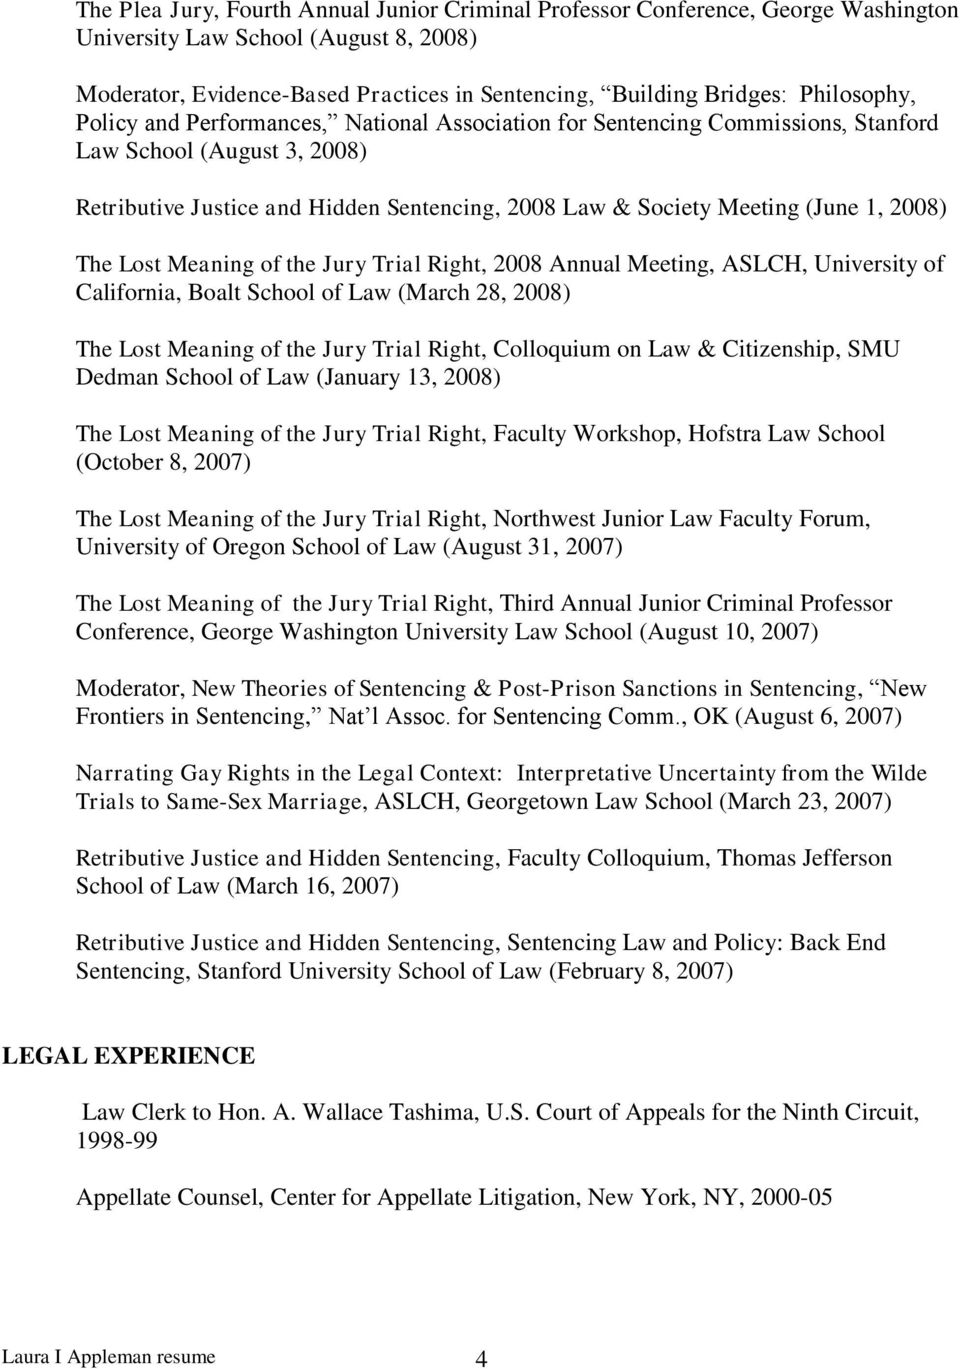 1, 2008) The Lost Meaning of the Jury Trial Right, 2008 Annual Meeting, ASLCH, University of California, Boalt School of Law (March 28, 2008) The Lost Meaning of the Jury Trial Right, Colloquium on